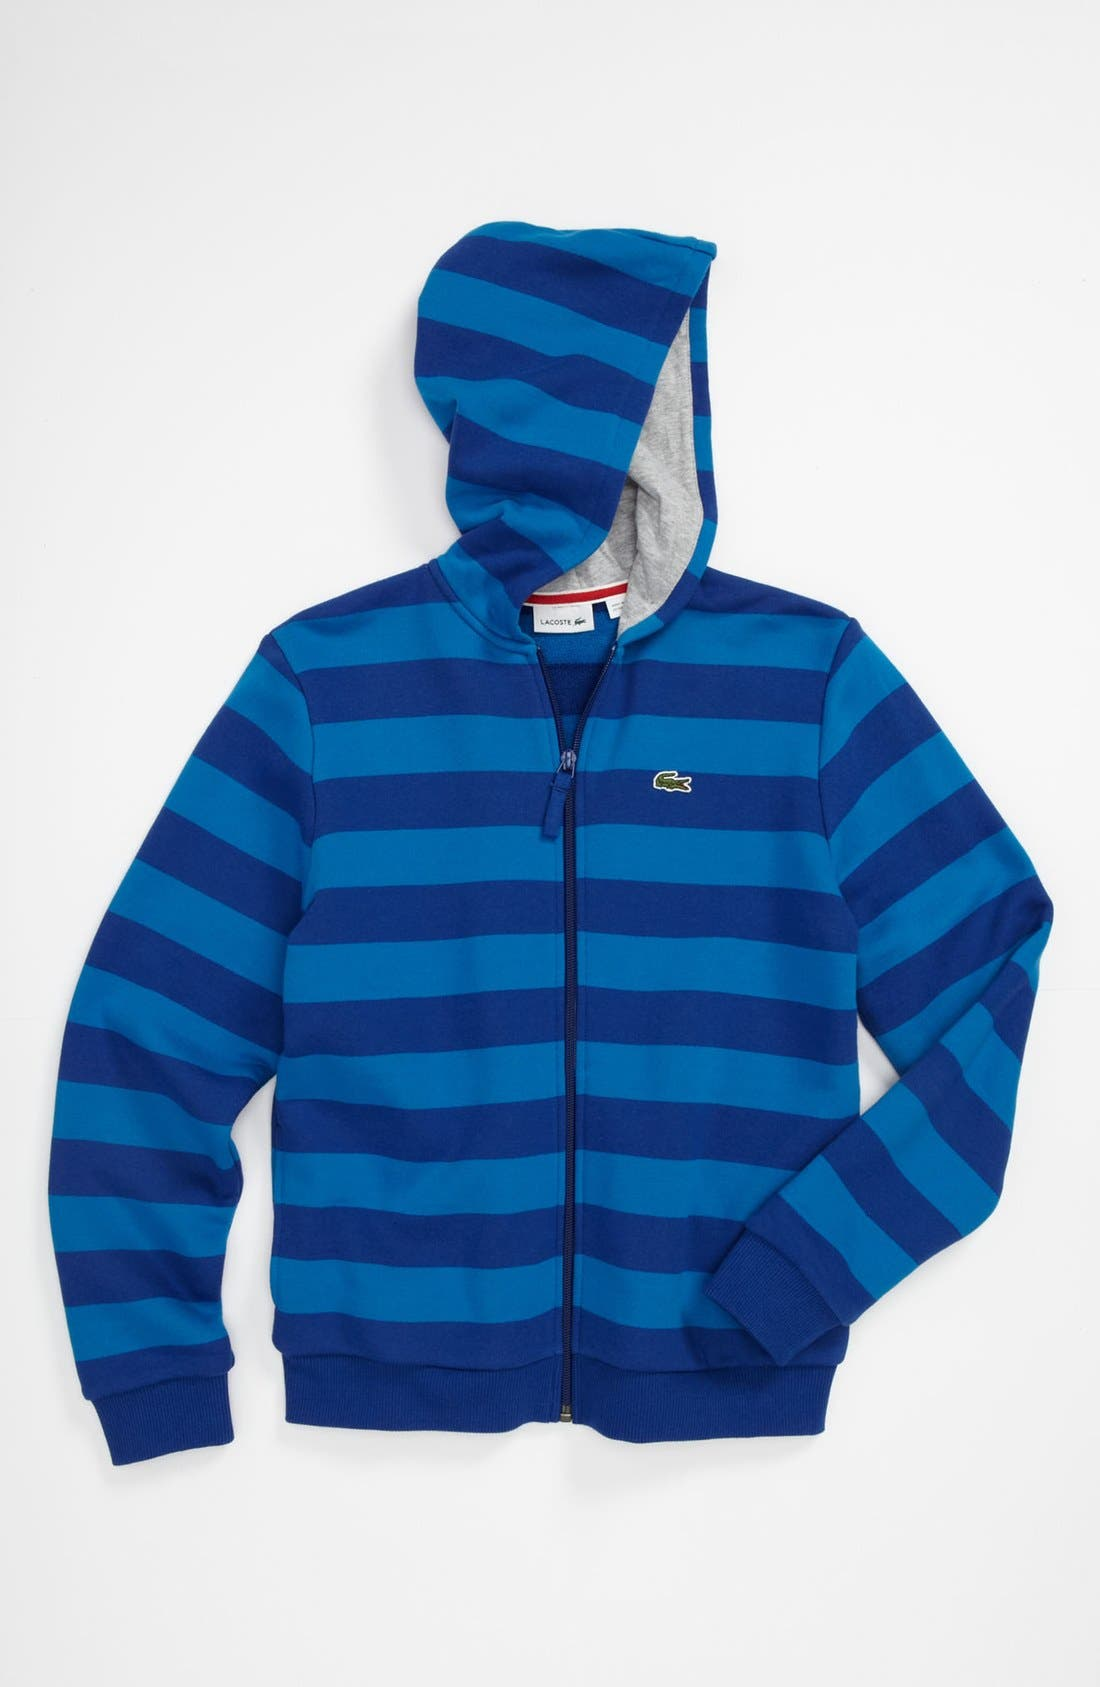 Main Image - Lacoste Stripe Sweatshirt (Big Boys)